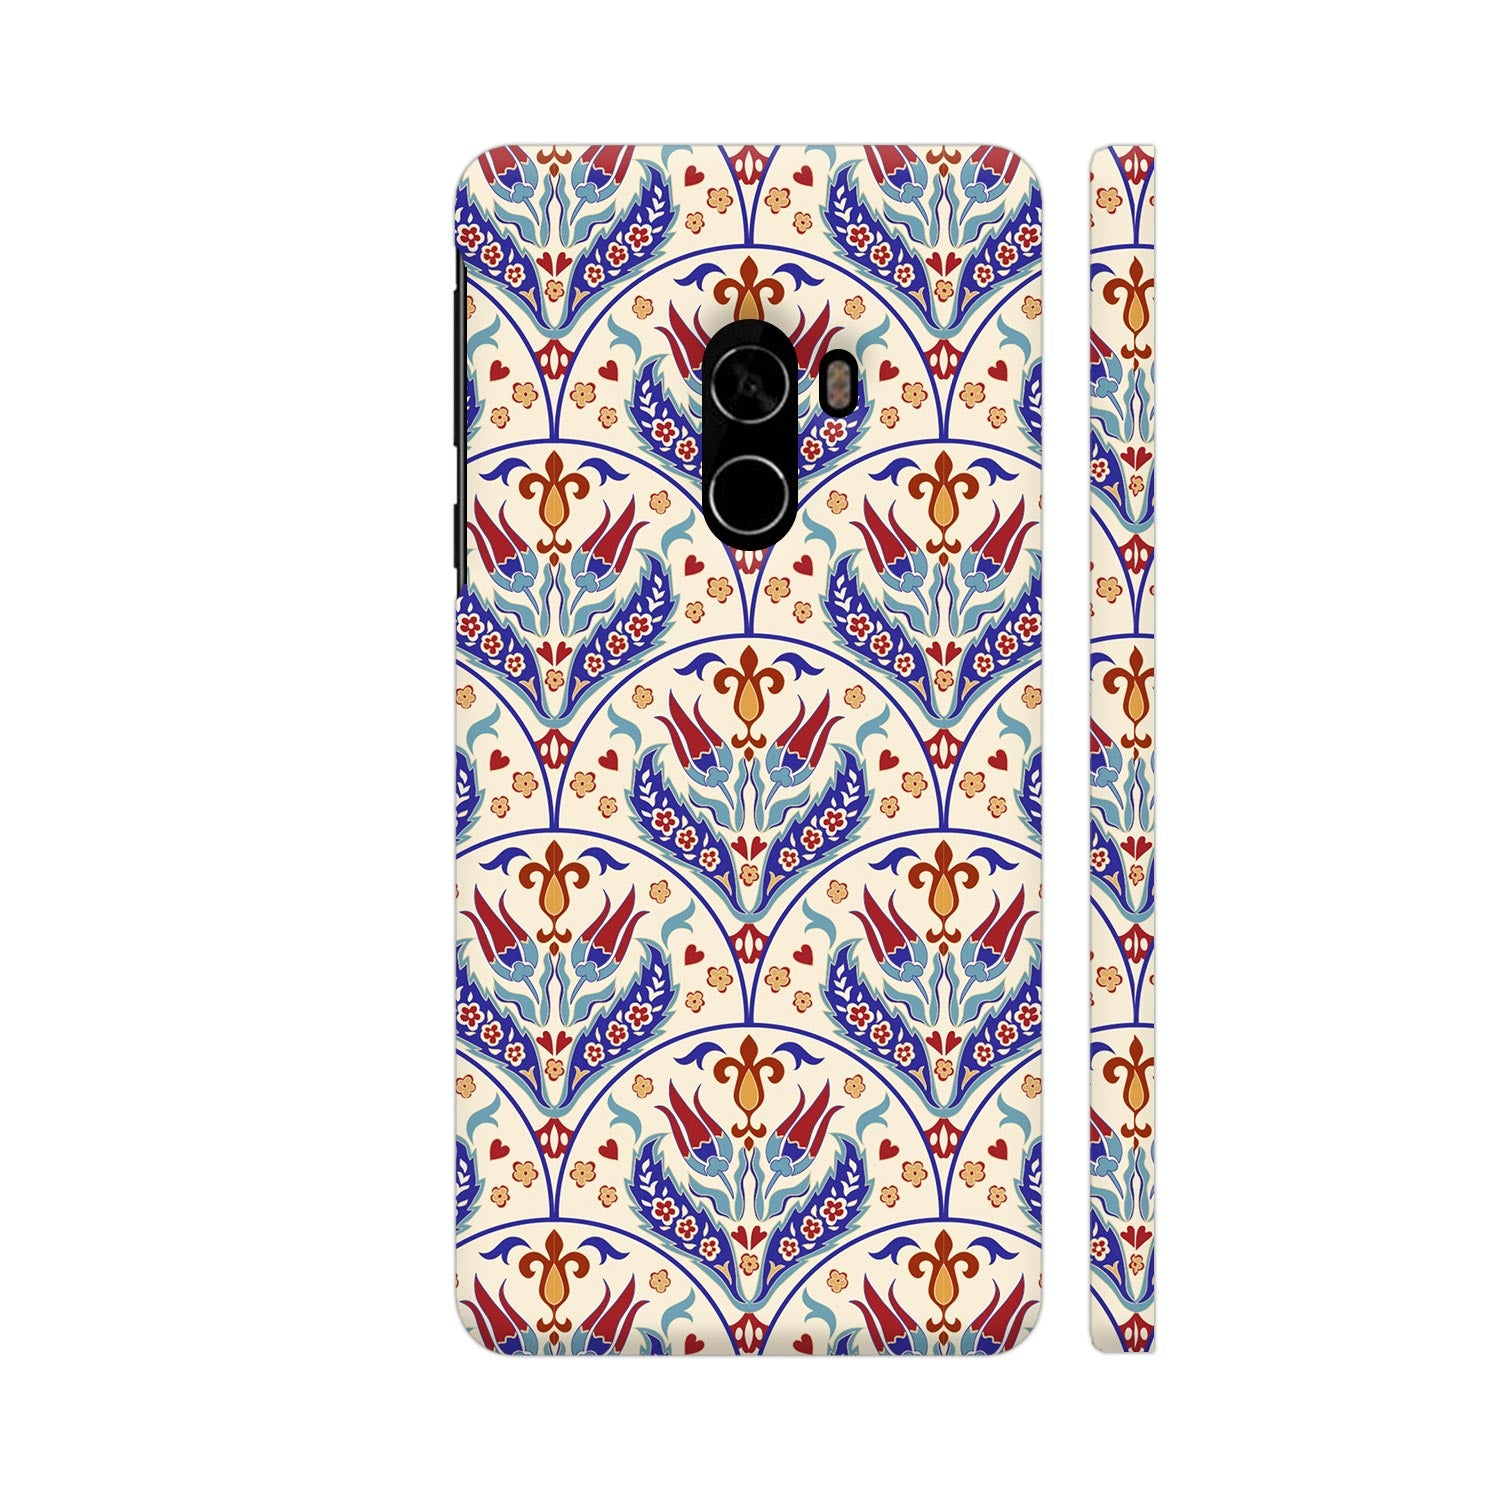 From Turkey With Love Slim Case And Cover For Mi Mix 2